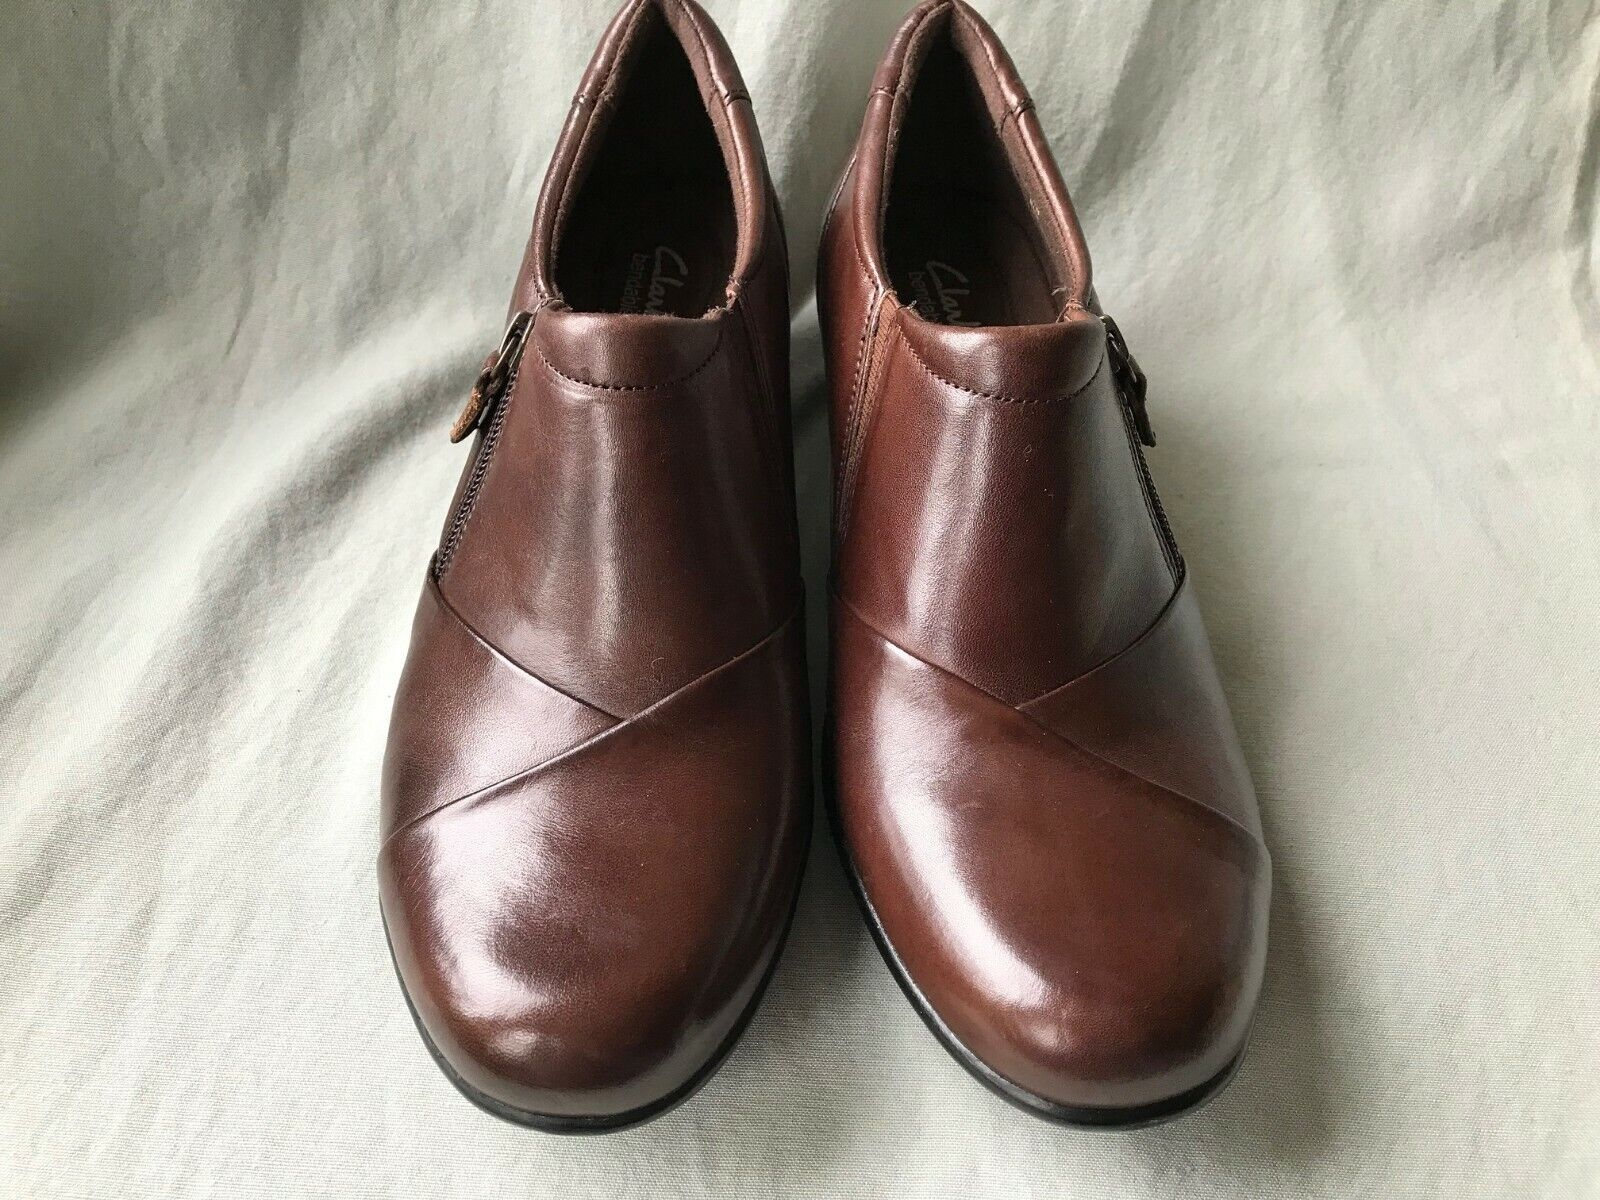 CLARKS Bendables  WISH HOPE  style 36734 Brown Leather Shooties Womens Size 11M